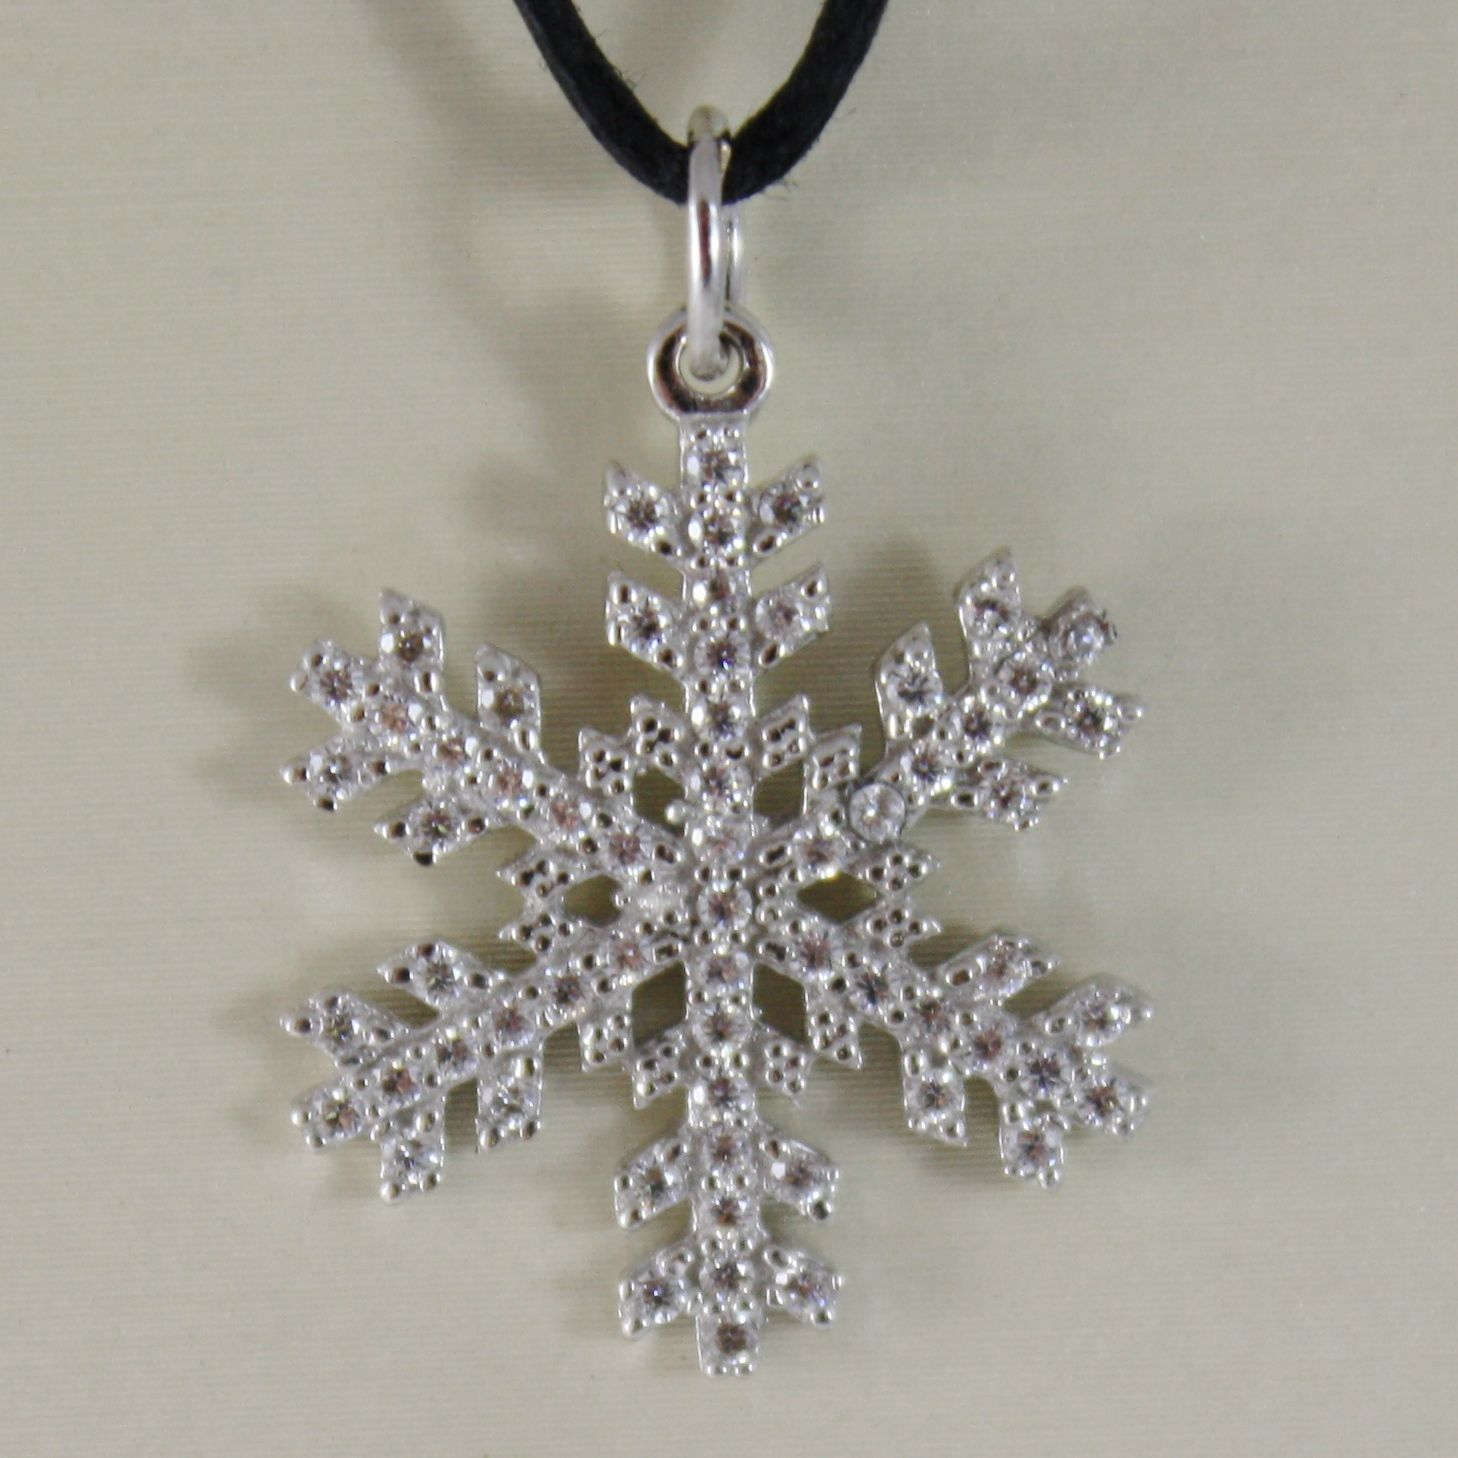 18K WHITE GOLD SNOWFLAKE PENDANT 25 MM, 0.98 INCHES, ZIRCONIA, MADE IN ITALY